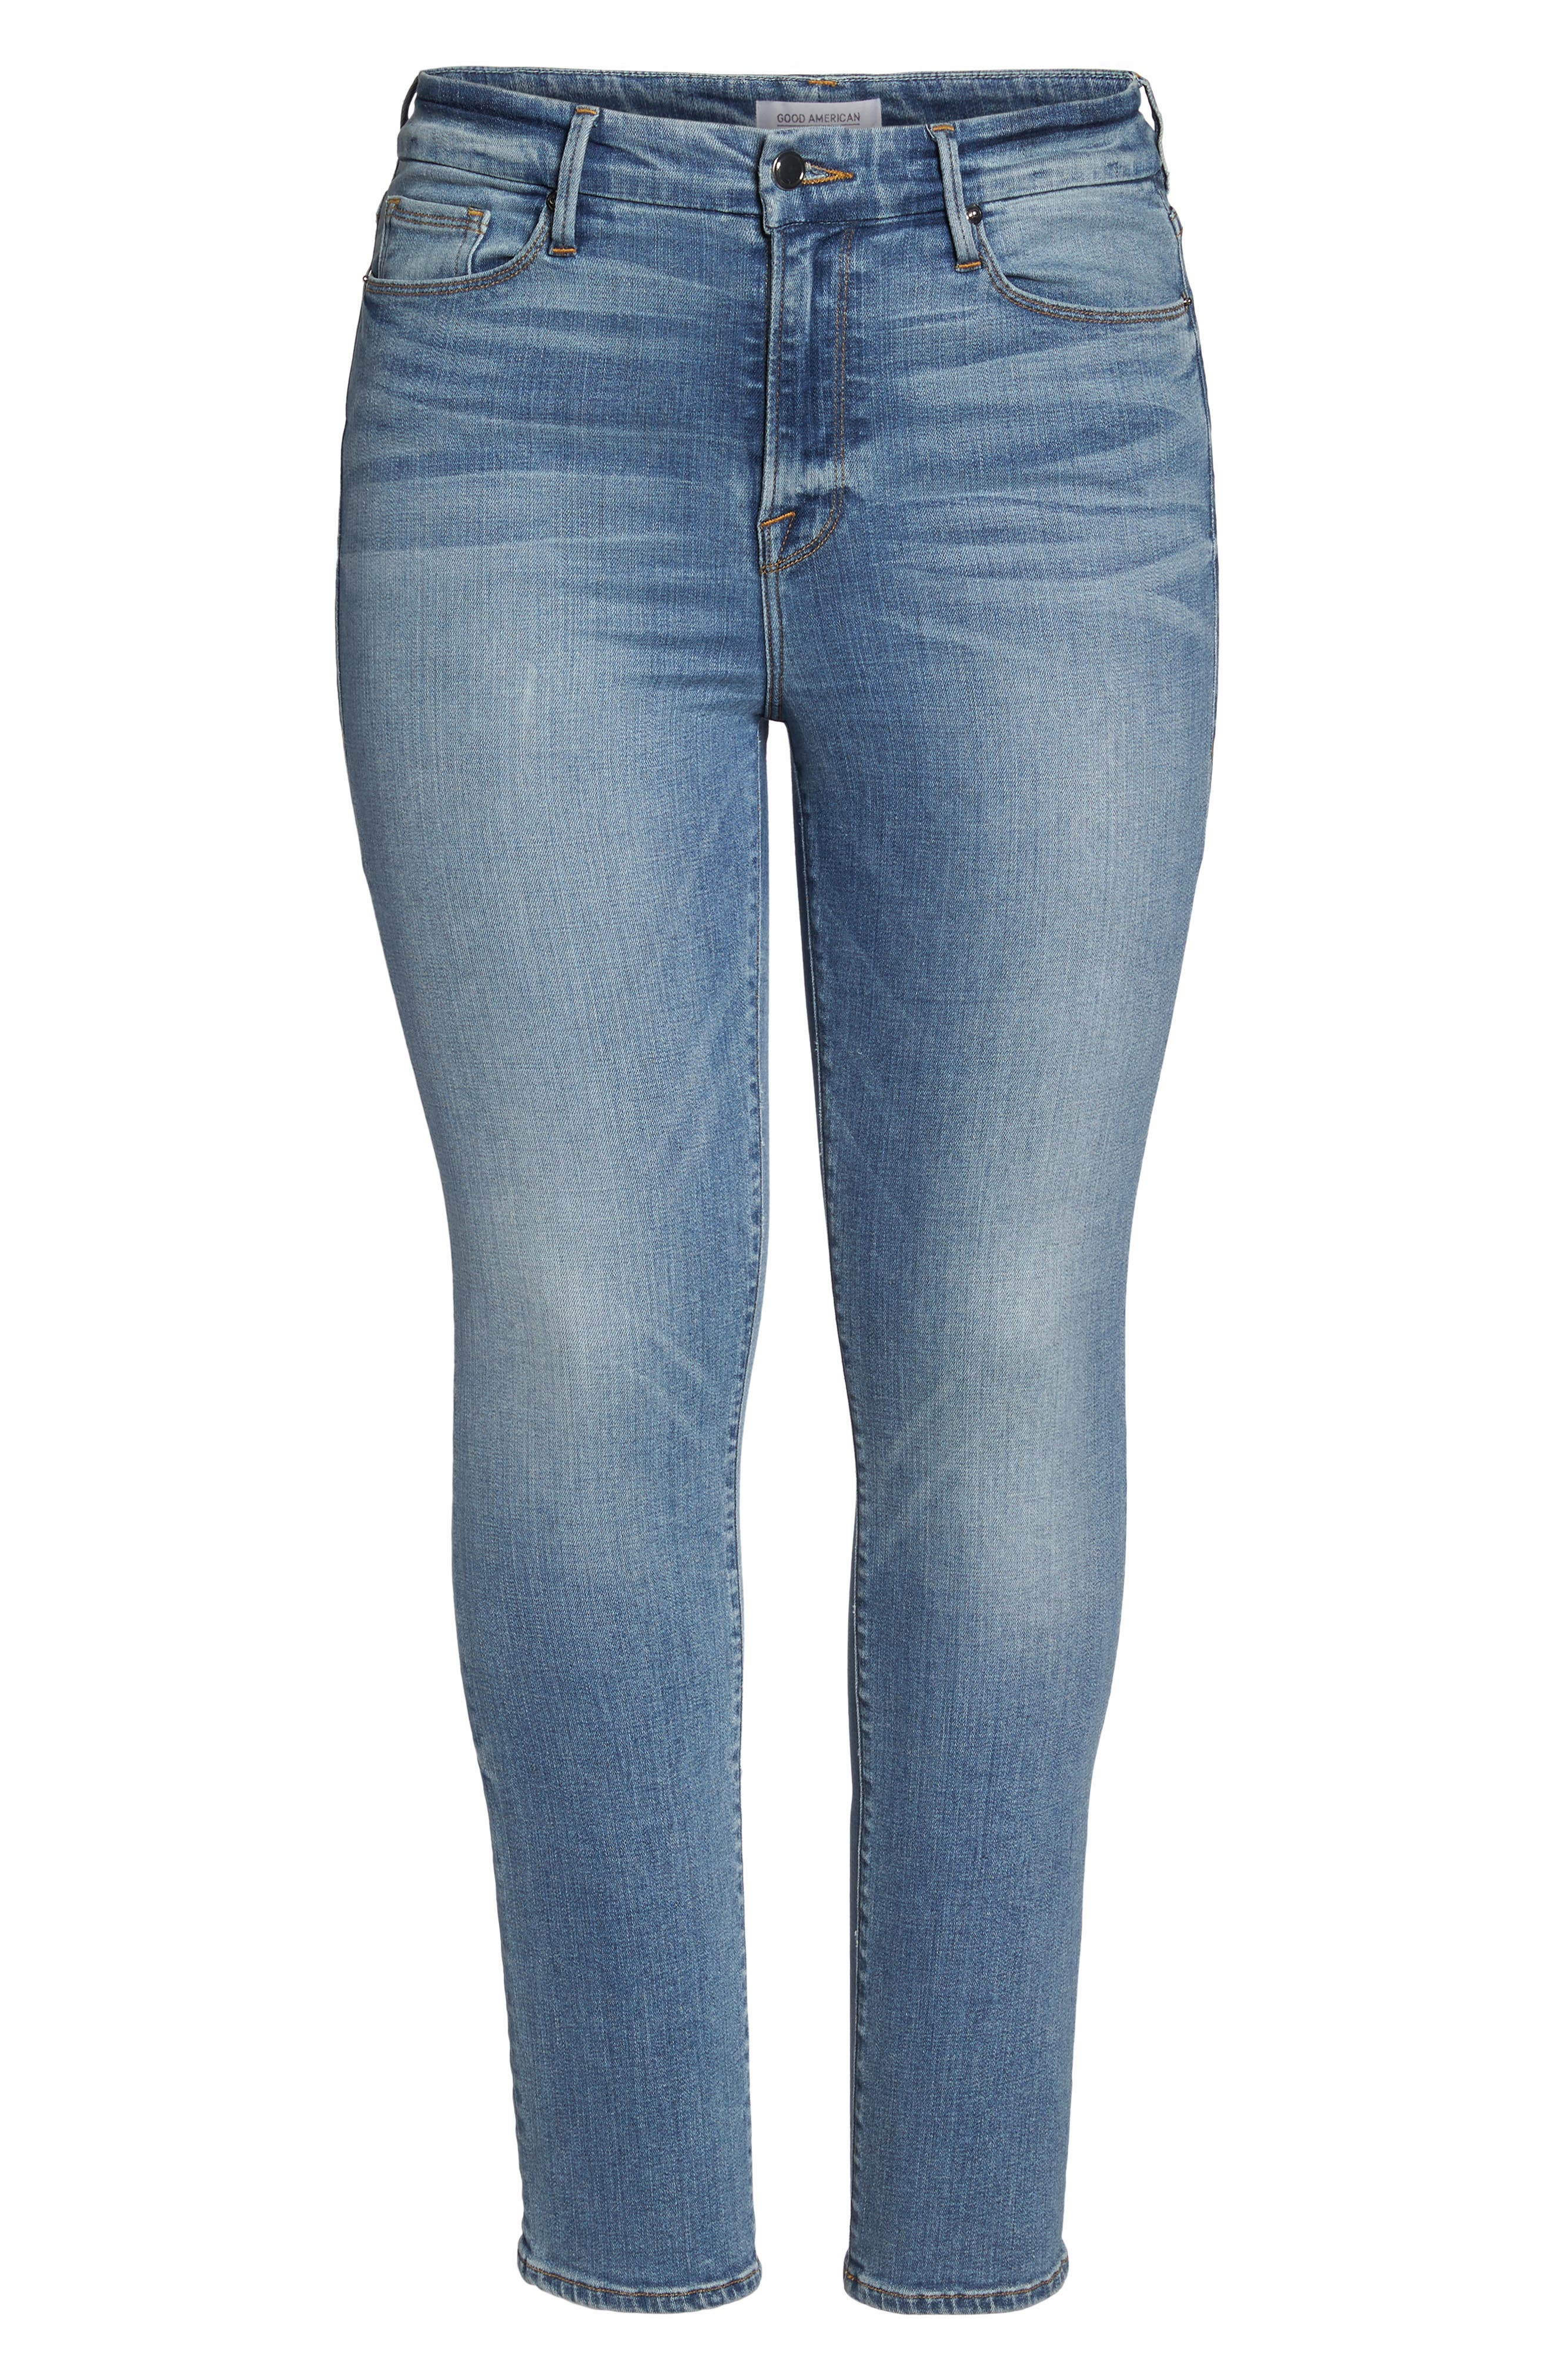 Good Straight High Rise Jeans,                             Alternate thumbnail 6, color,                             401